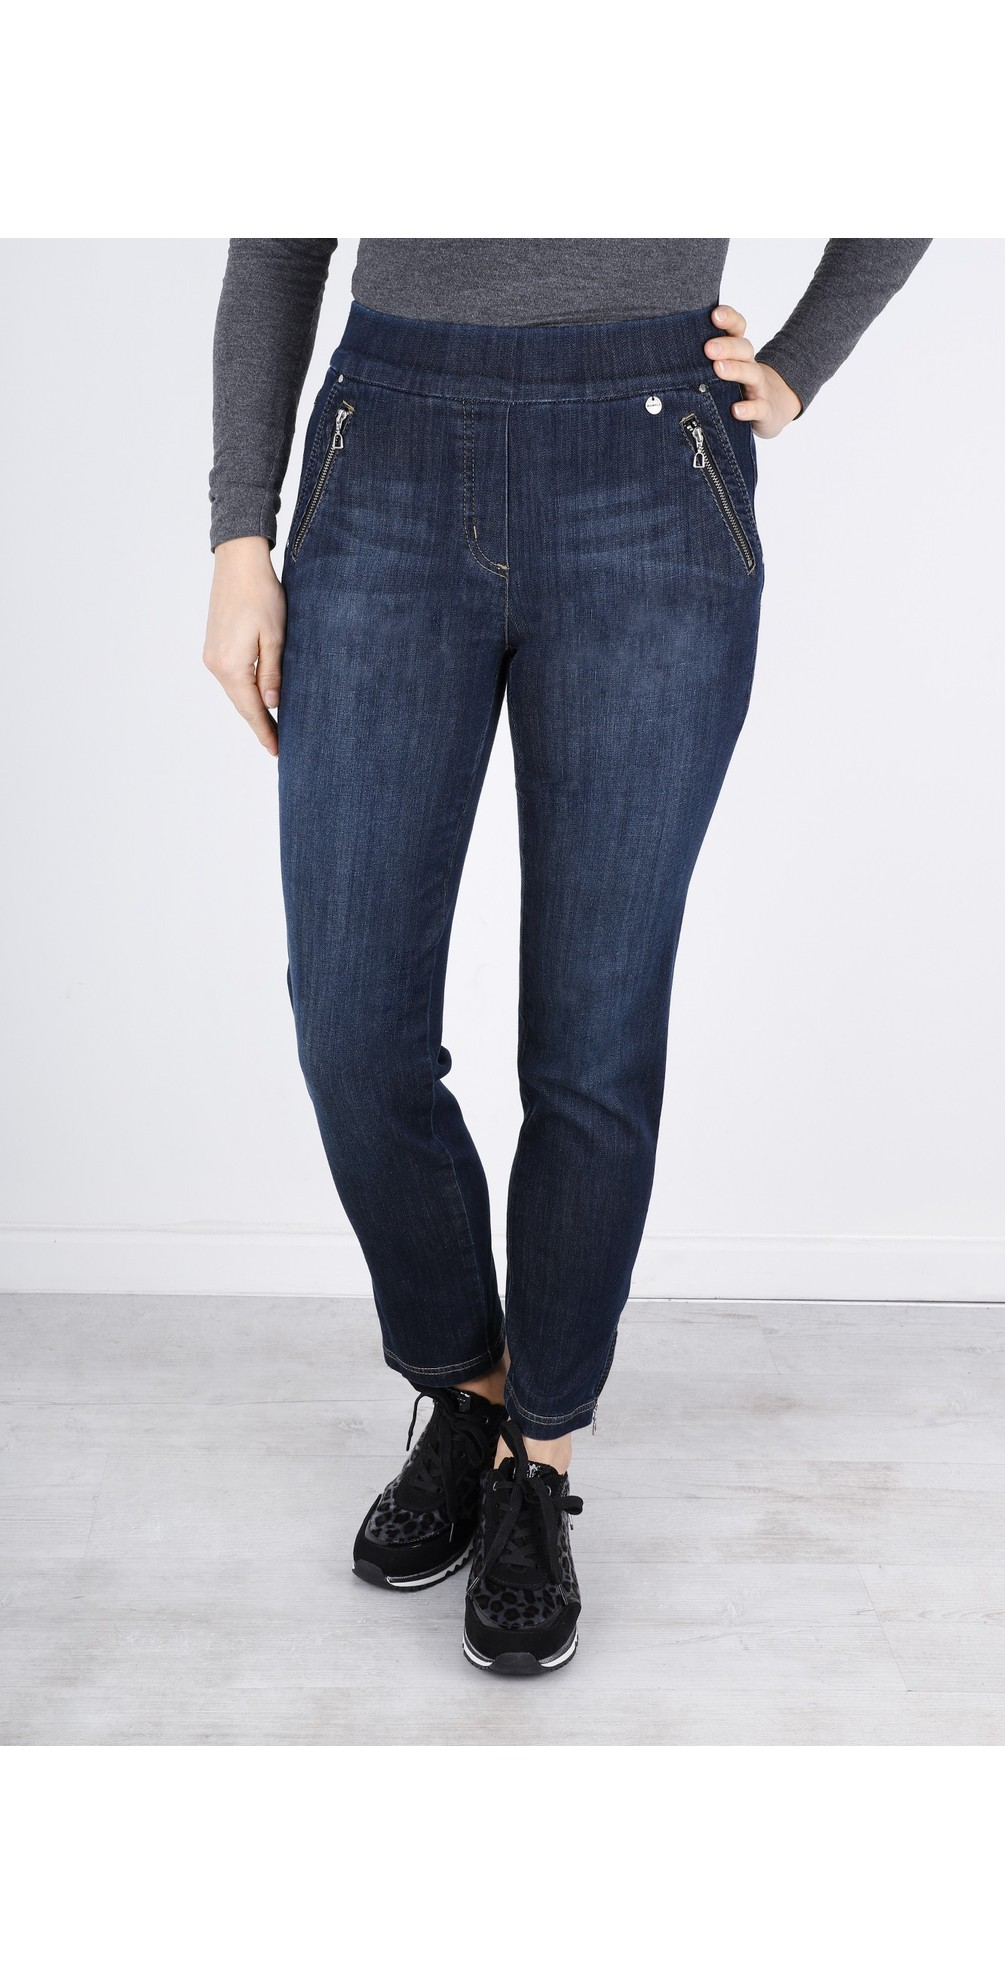 Nena Navy Washed Denim Ankle Zip Cropped Jeans main image